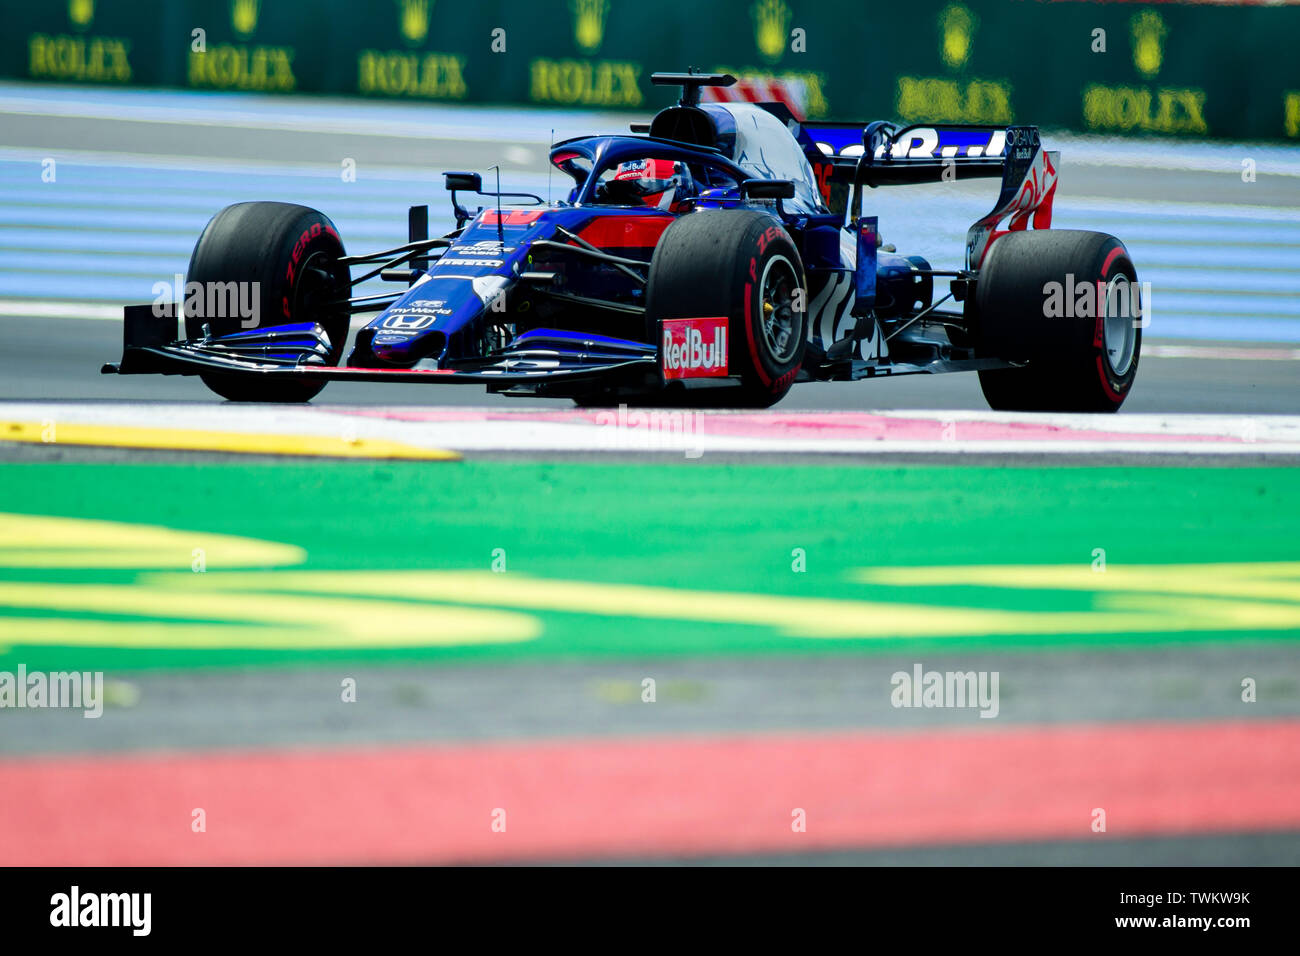 Marseille, France. 21st June 2019, Circuit Automobile Paul Ricard, Le Castellet, Marseille, France ; FIA Formula 1 Grand Prix of France, practise sessions; Daniil Kvyat of the Toro Rosso Team in action during free practice 1 Credit: Action Plus Sports Images/Alamy Live News Stock Photo